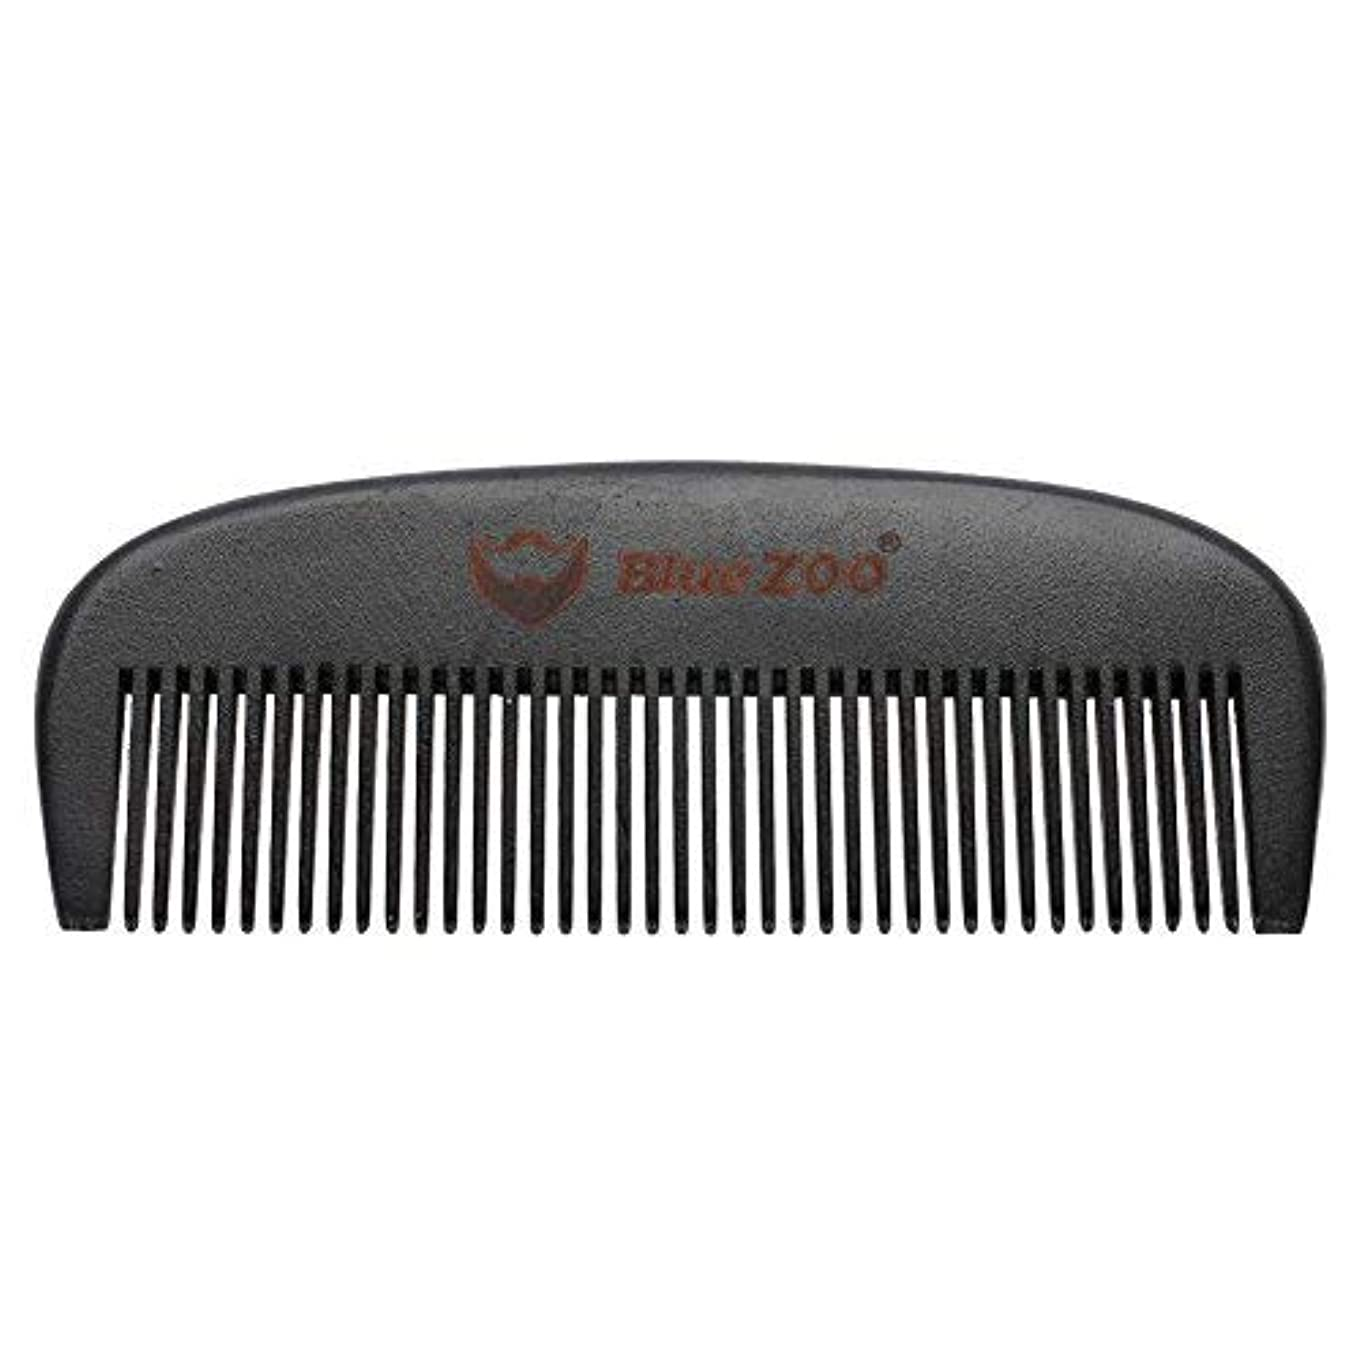 カスケード懸念アンソロジーMens Beard Comb Natural Wooden Moustache Hair Health Care Combing Black Pear Wood Anti-static Fine Wide Tooth...